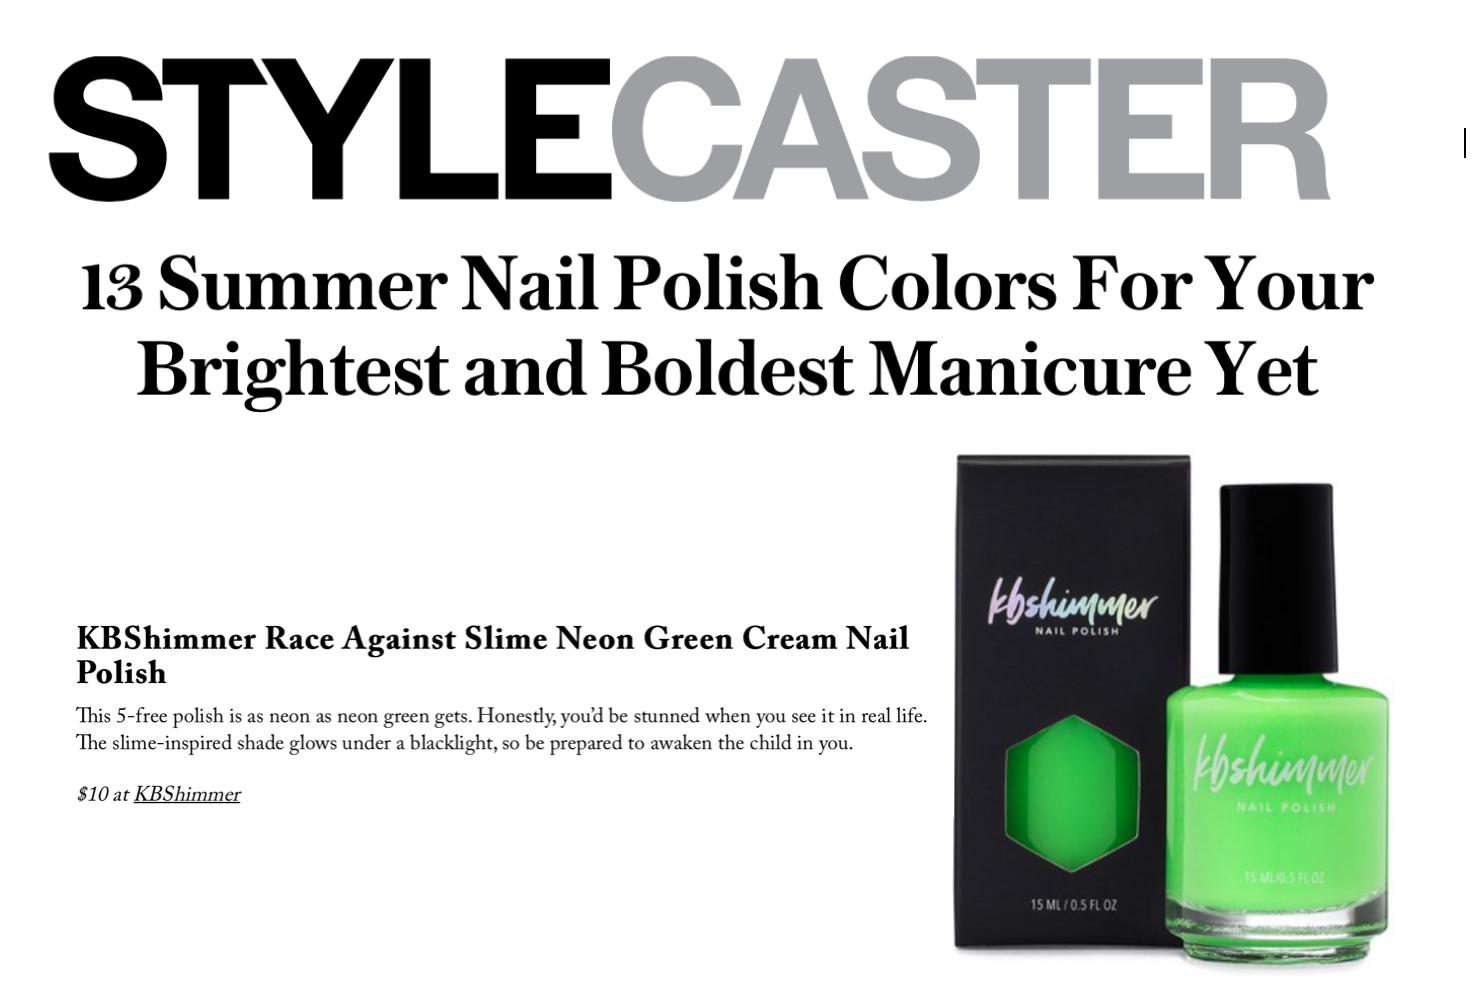 StyleCaster 7.14.19.png